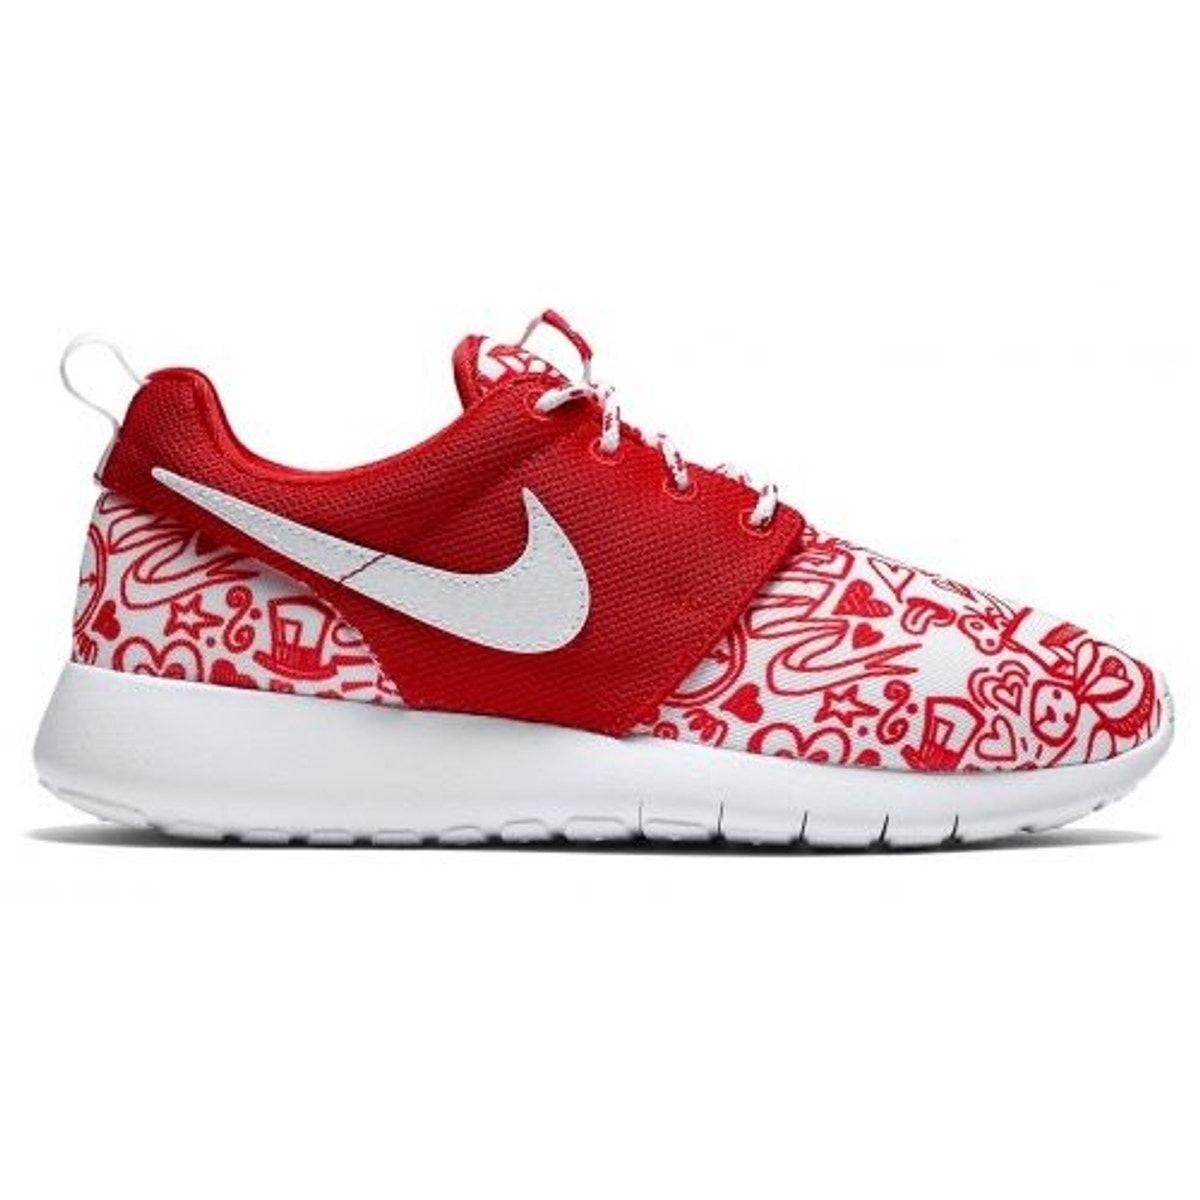 popular stores brand new big discount Roshe One Print (gs) Rouge - - Taille : 38 1/2   Nike roshe ...